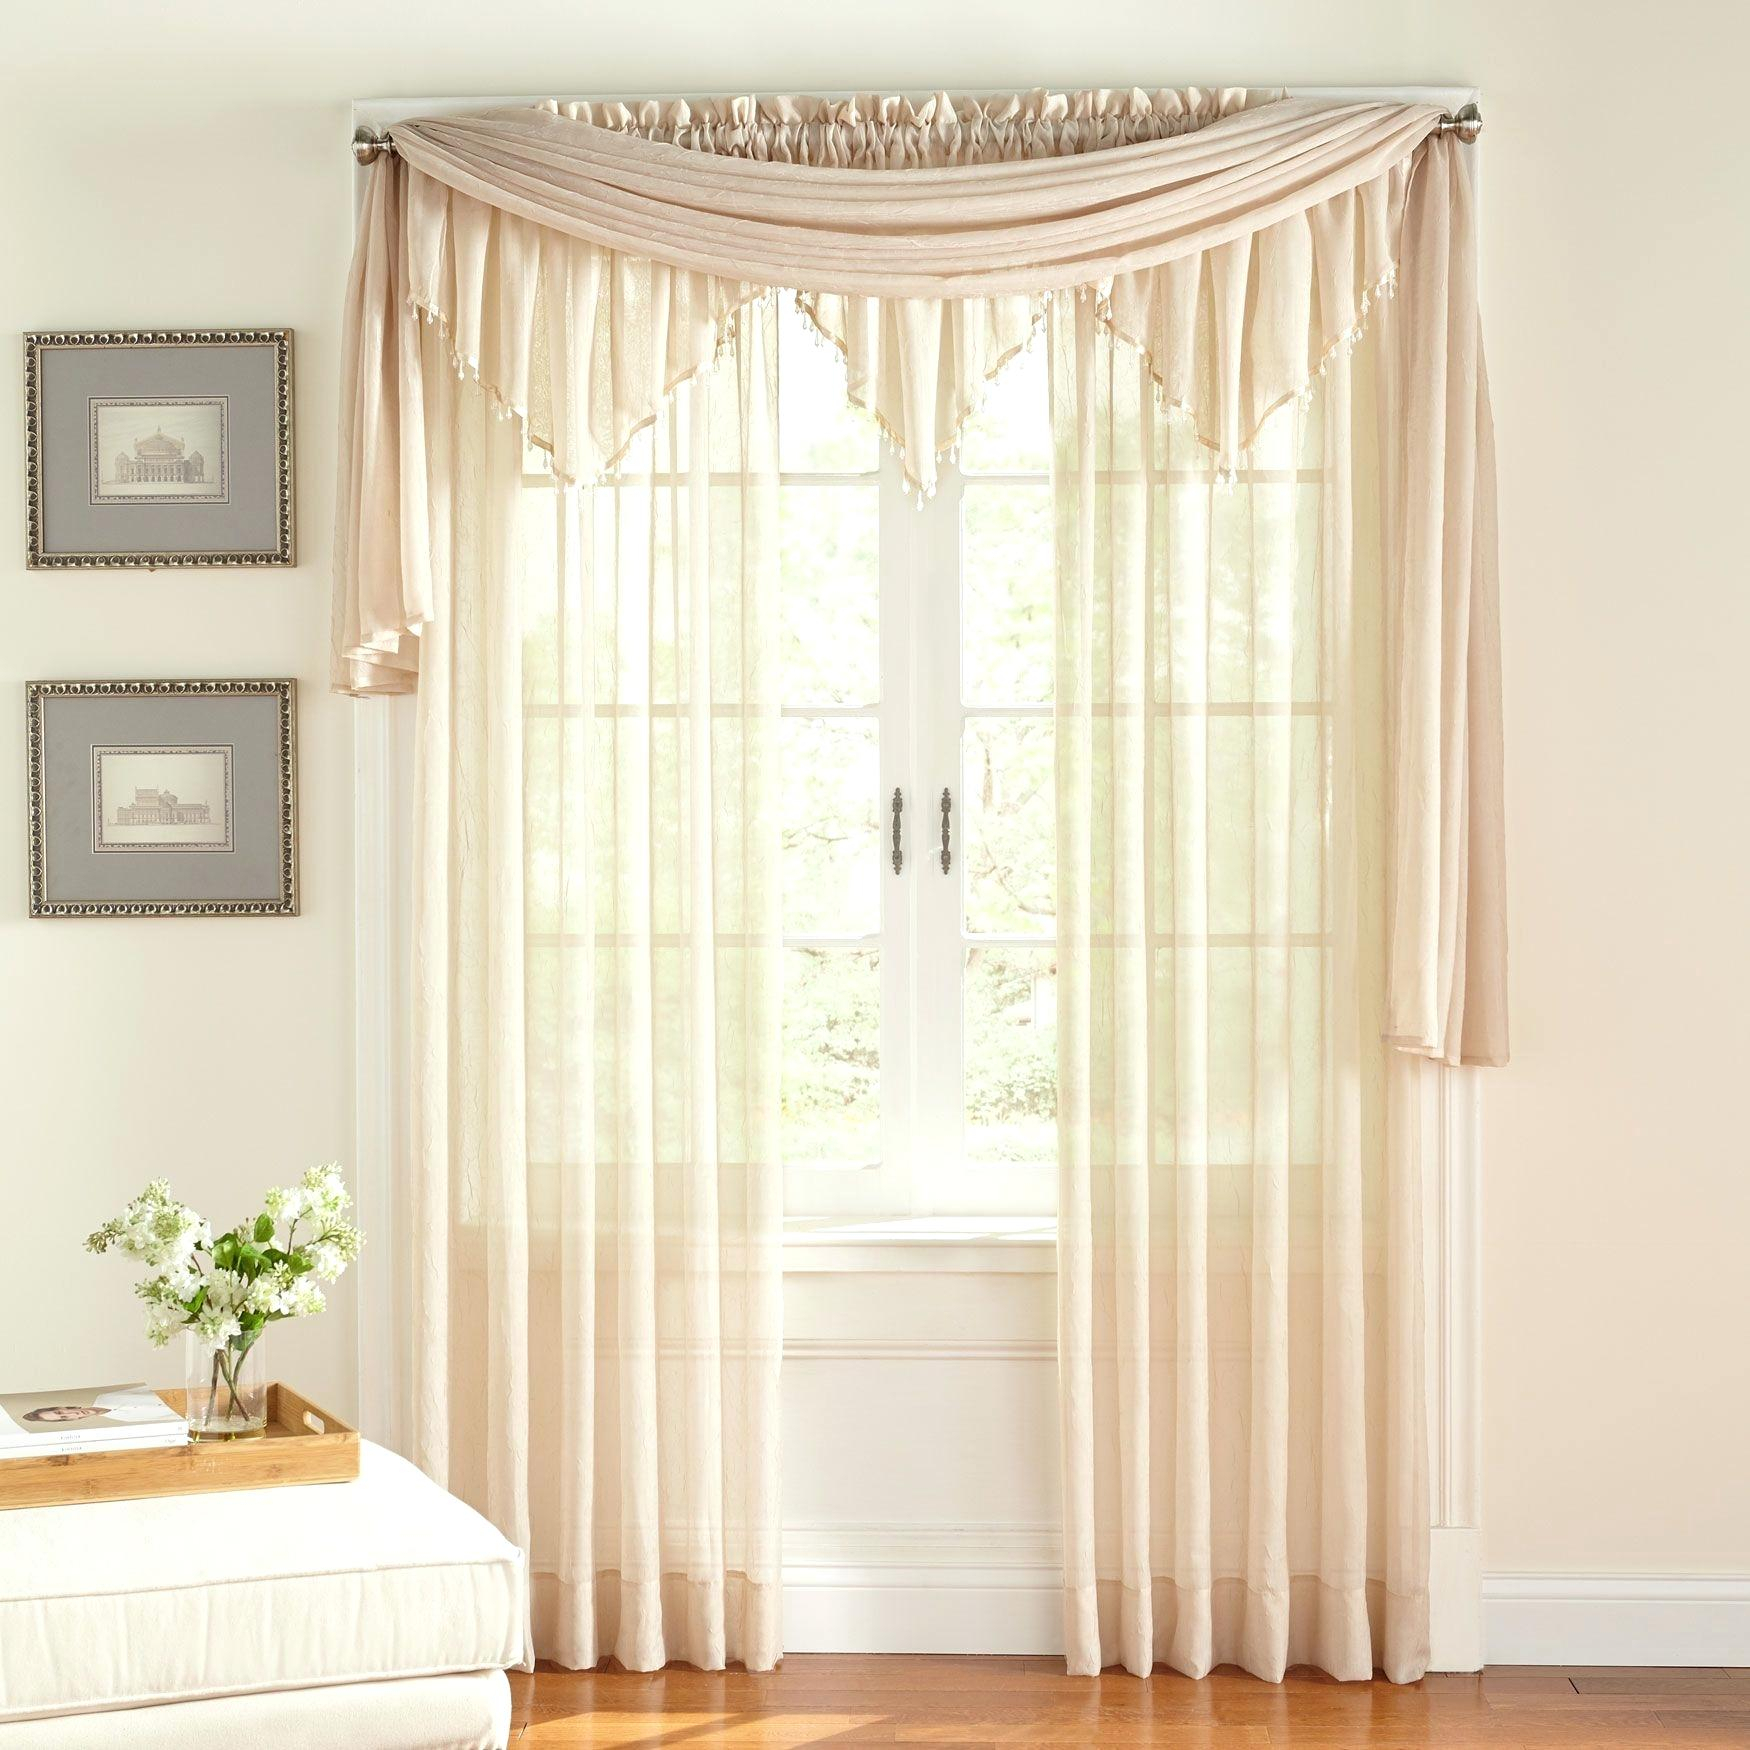 Crushed Voile Curtains – Wethepeopleoklahoma For Sheer Voile Ruffled Tier Window Curtain Panels (View 8 of 20)